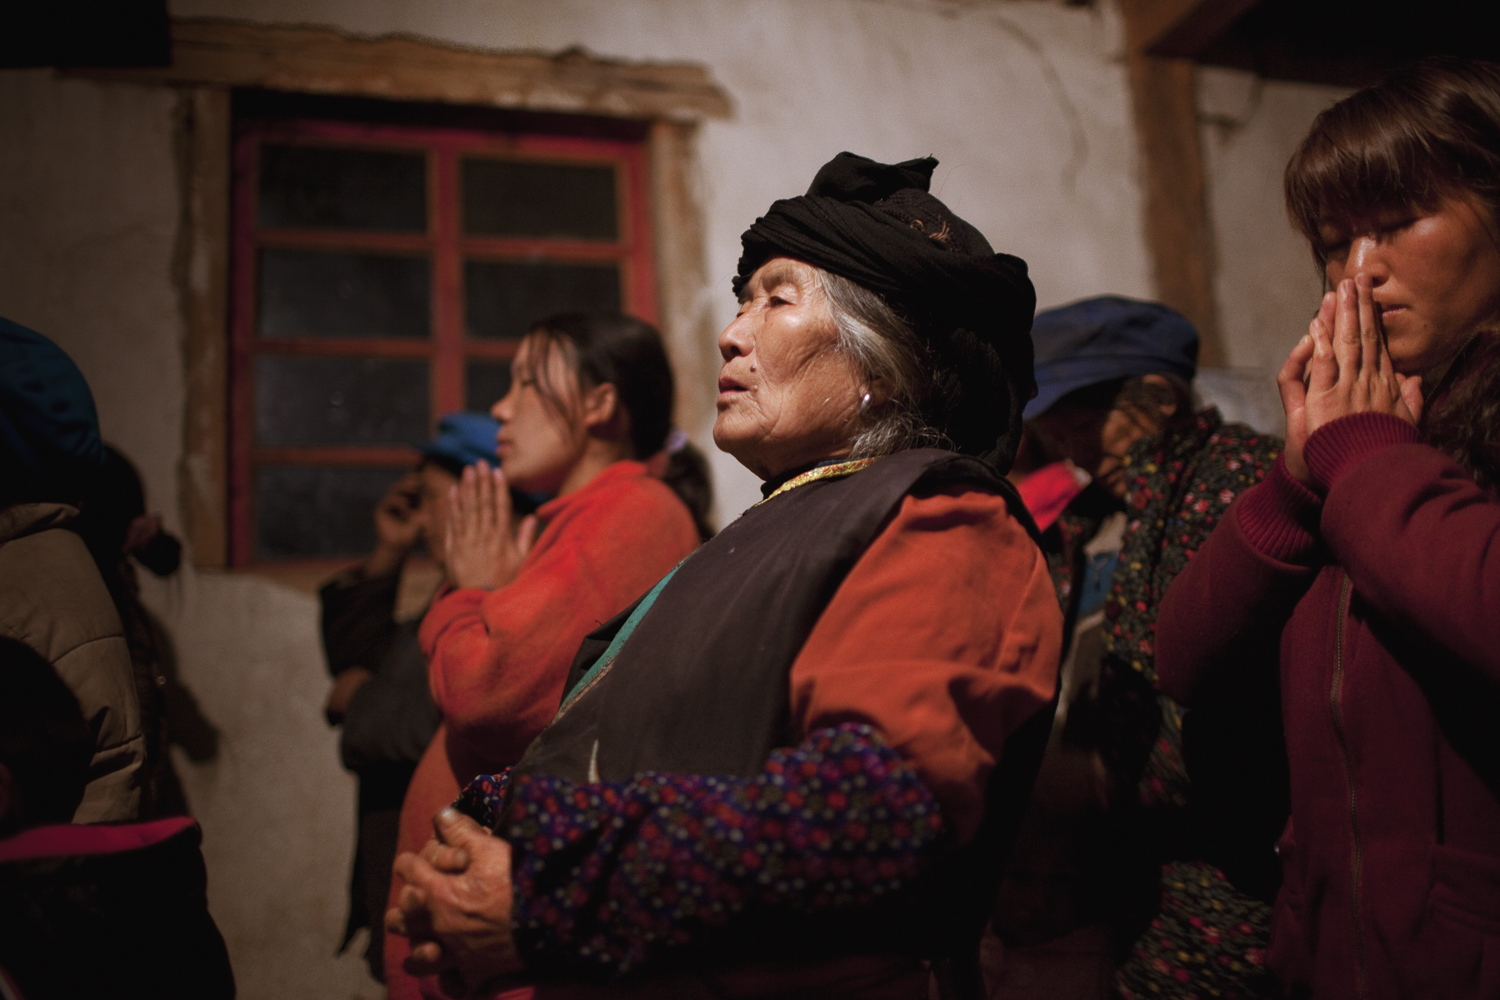 Qiunatong Village, Yunnan. Most of the minority groups converted to Christianity a hundred years ago when missionaries crossed over from Burma. Villagers gather for a late night mass on New Year's Eve.